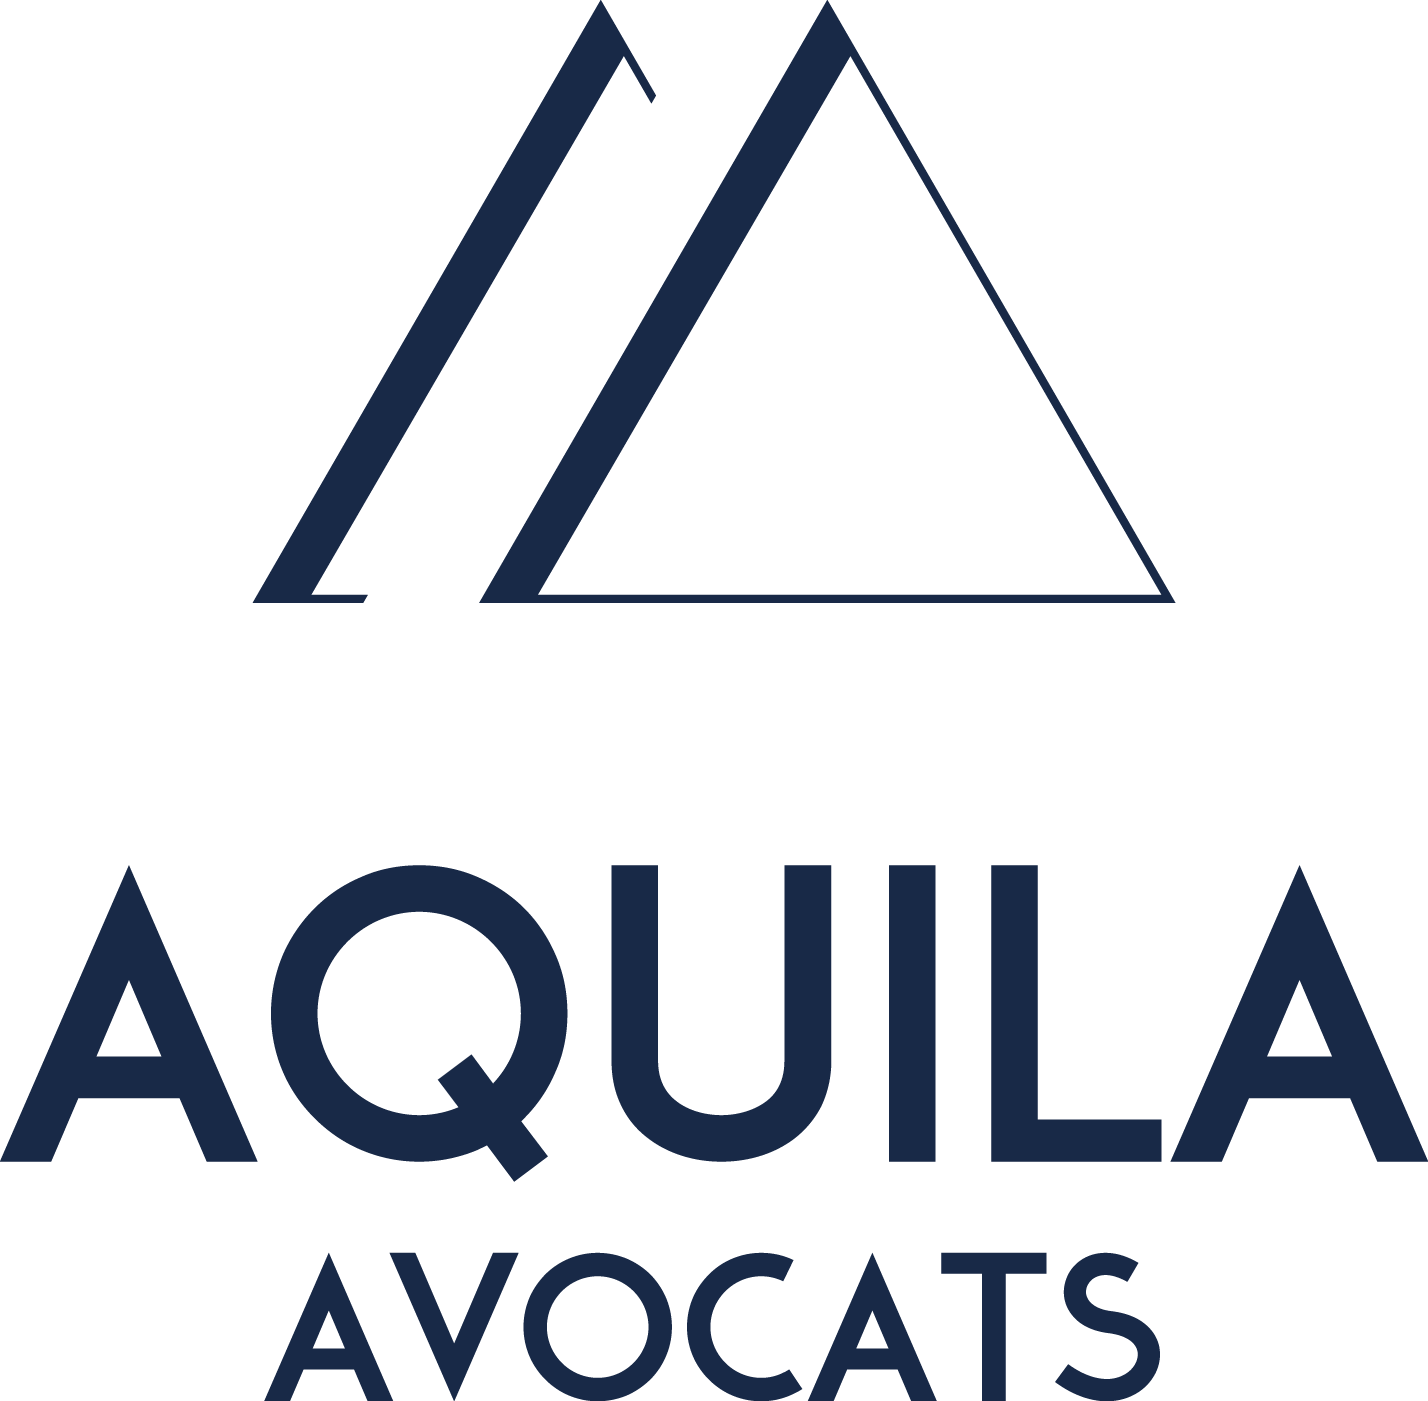 the Aquila Avocats logo.